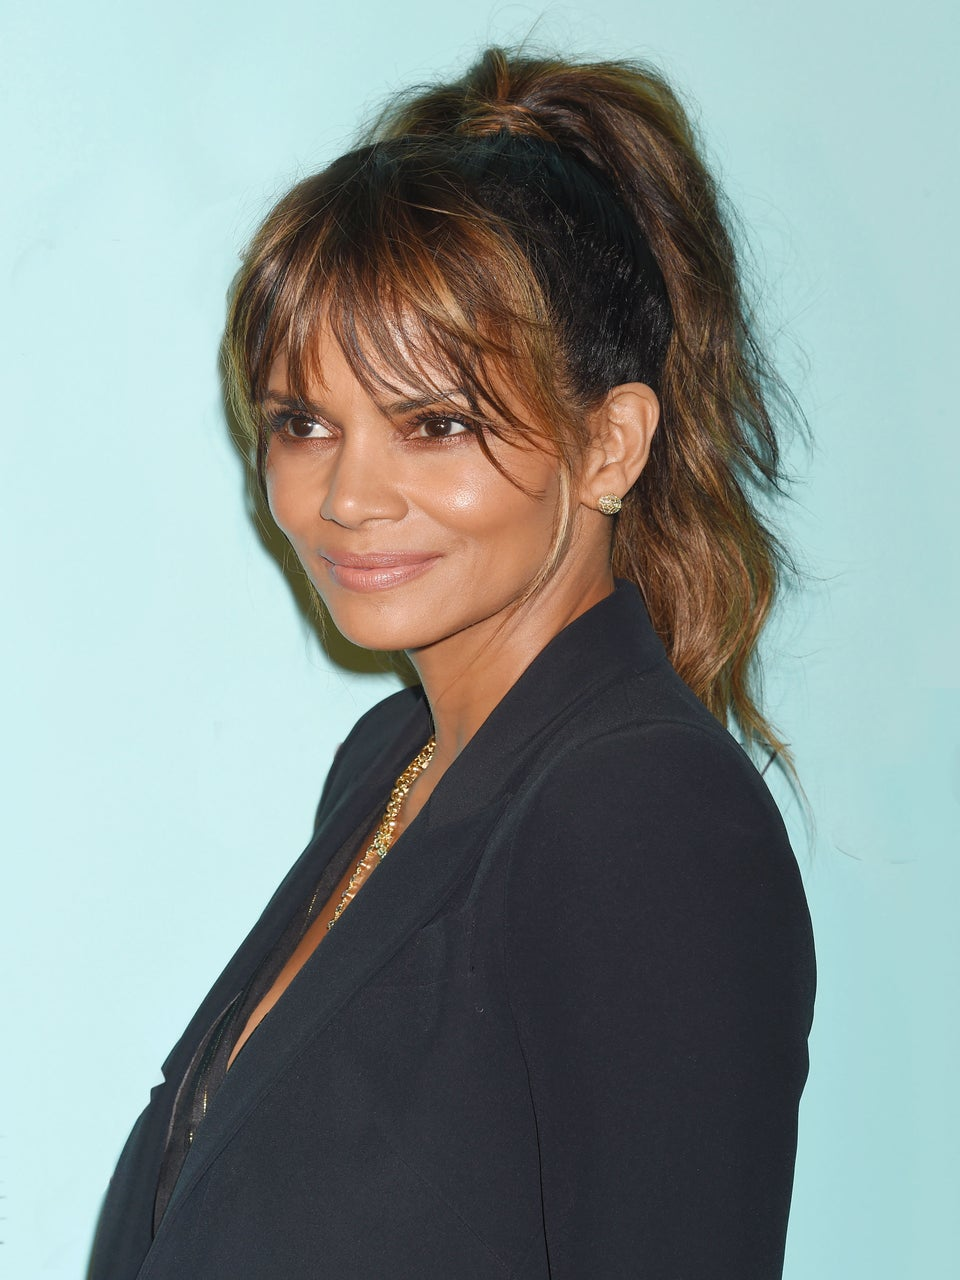 Halle Berry Opens Up About Feeling 'Guilty' After 3 Divorces: 'I've Suffered a Lot of Pain and Anguish'